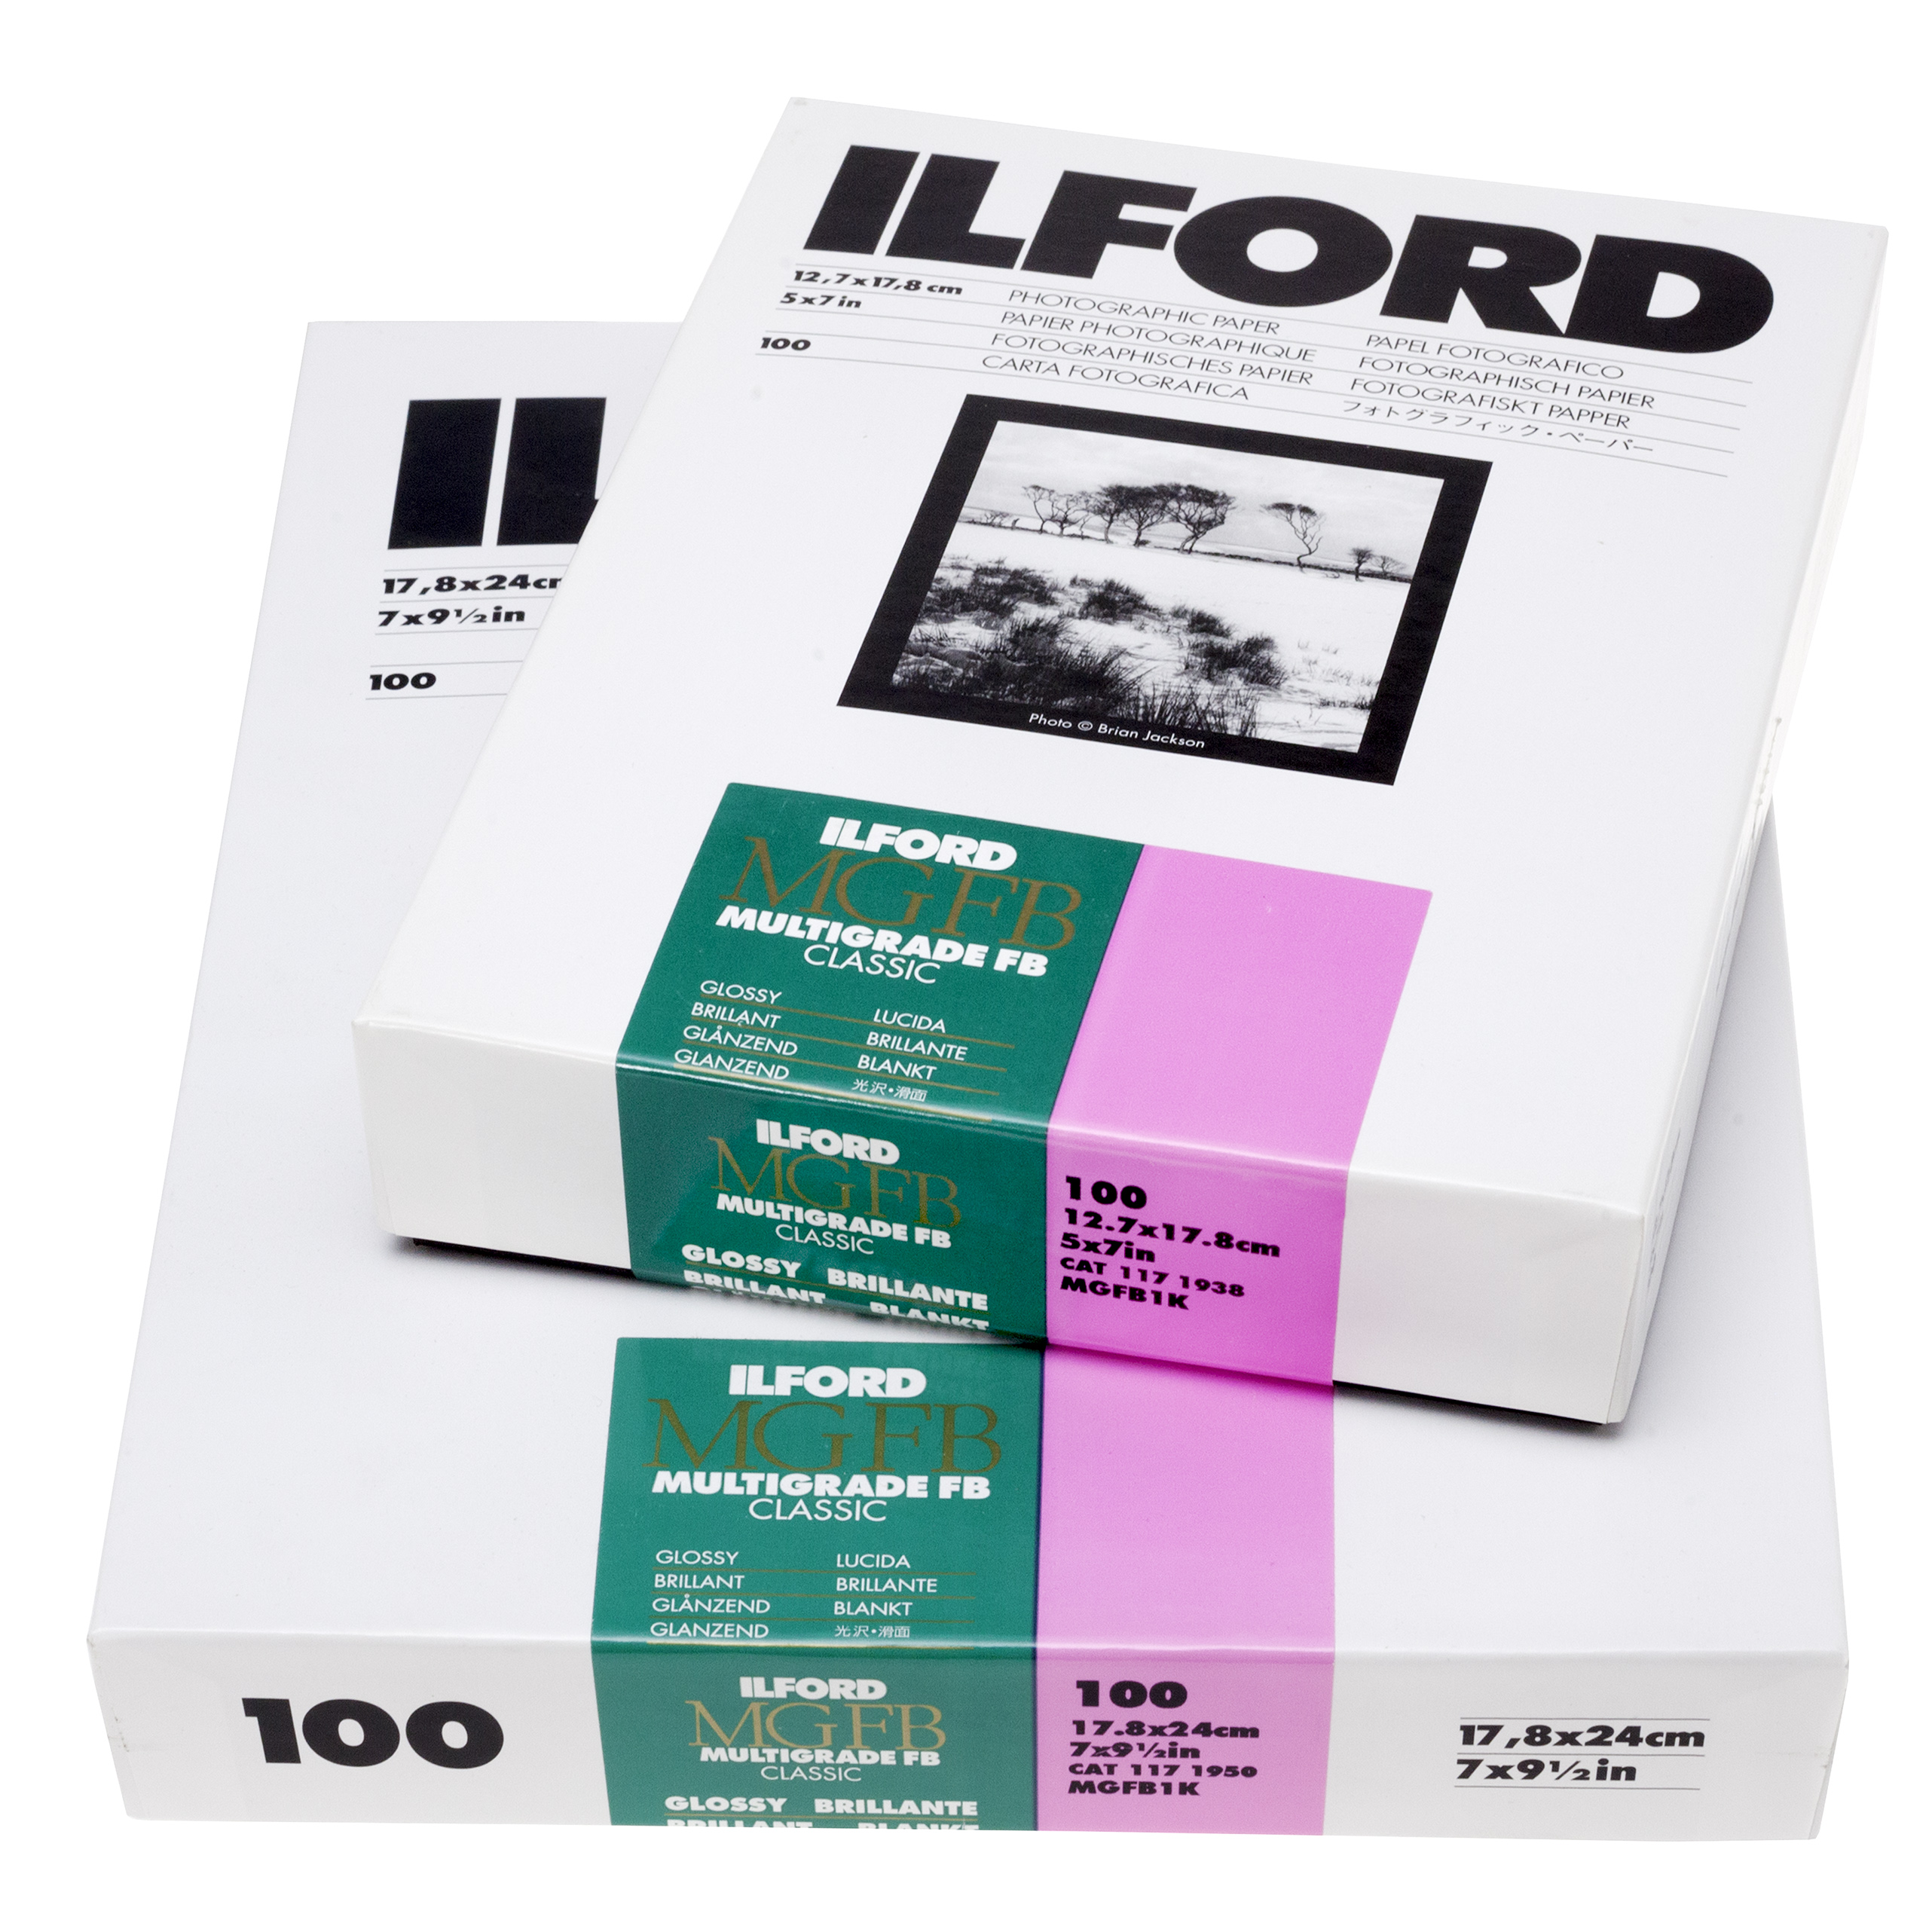 Bild 1 ilford multigrade fb classic 1k natural gloss 8 inchx10 inch